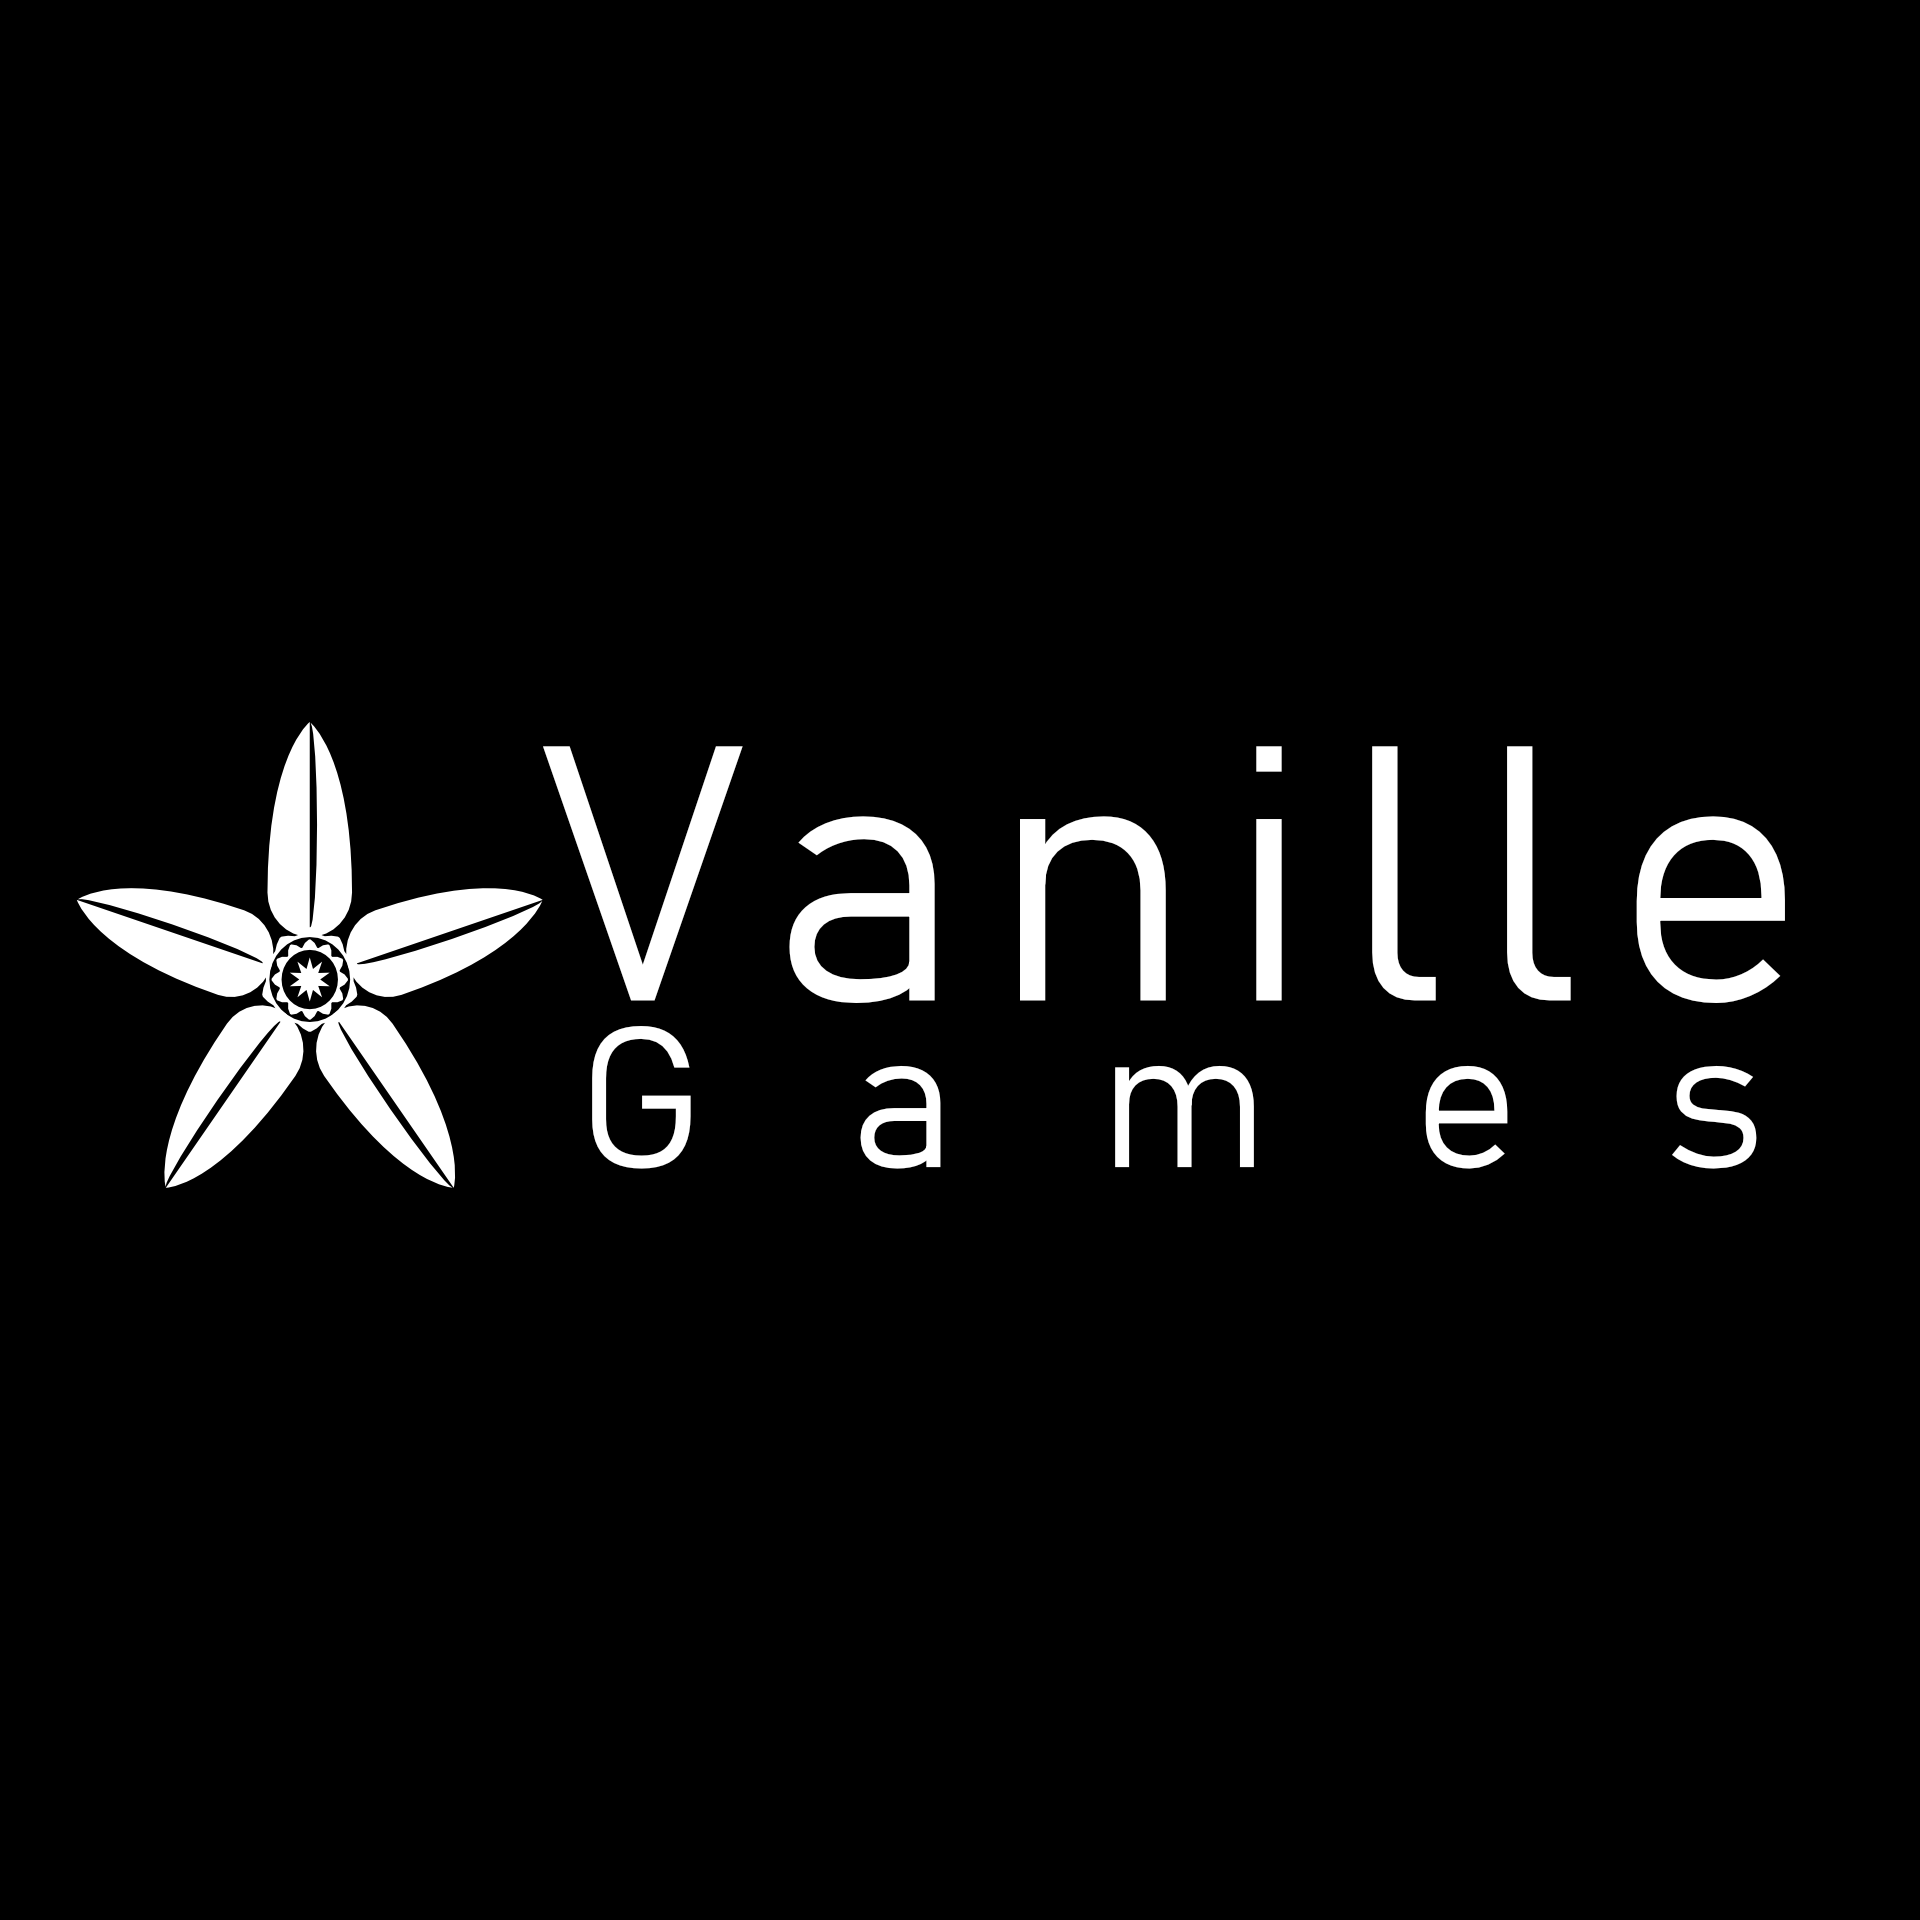 vanille_games_whitetext_square.png